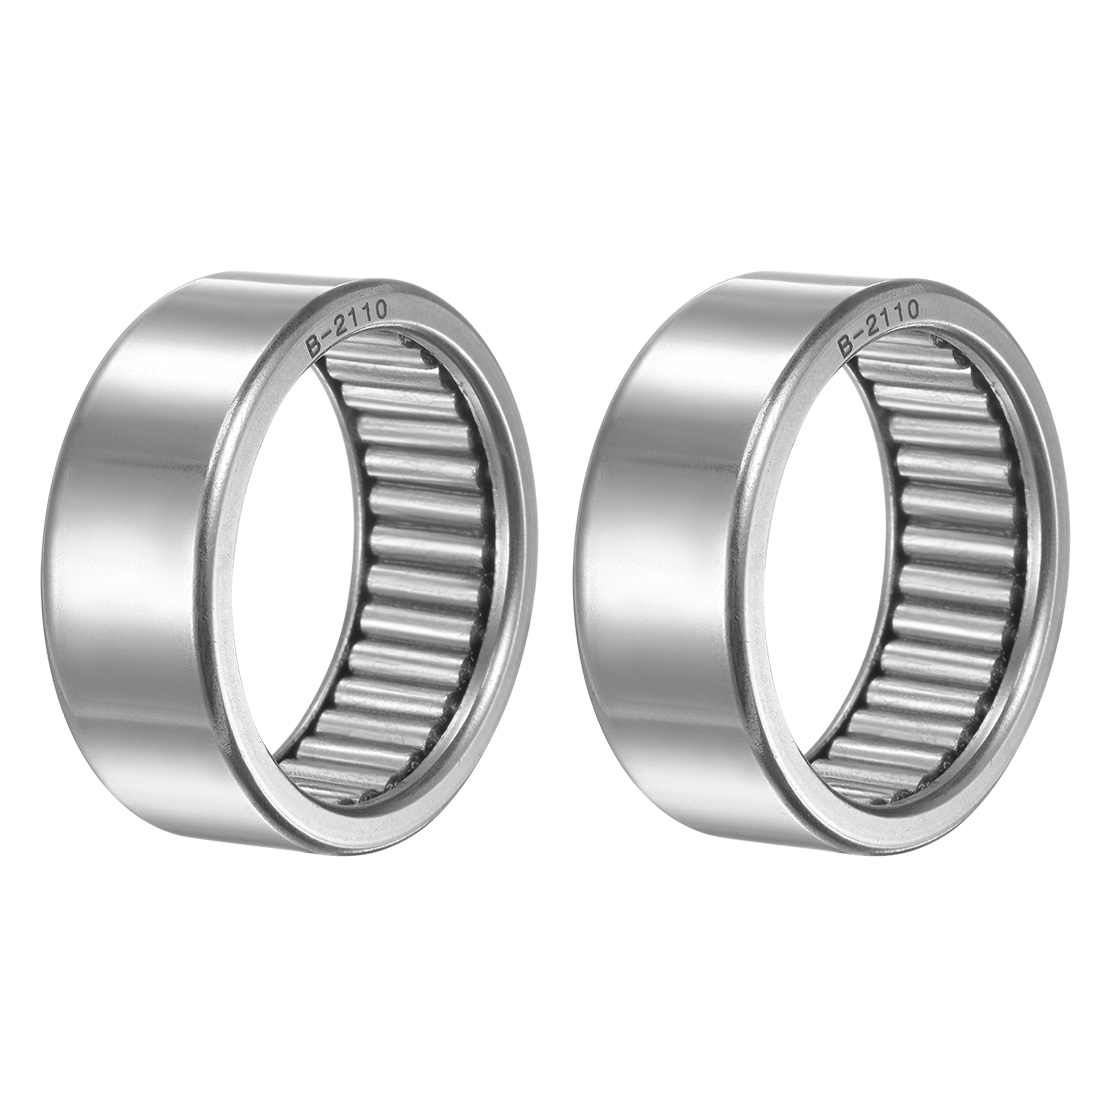 """B2110 Needle Roller Bearings 1-5/16""""x1-5/8""""x5/8"""" Full Complement Drawn Cup 2pcs"""